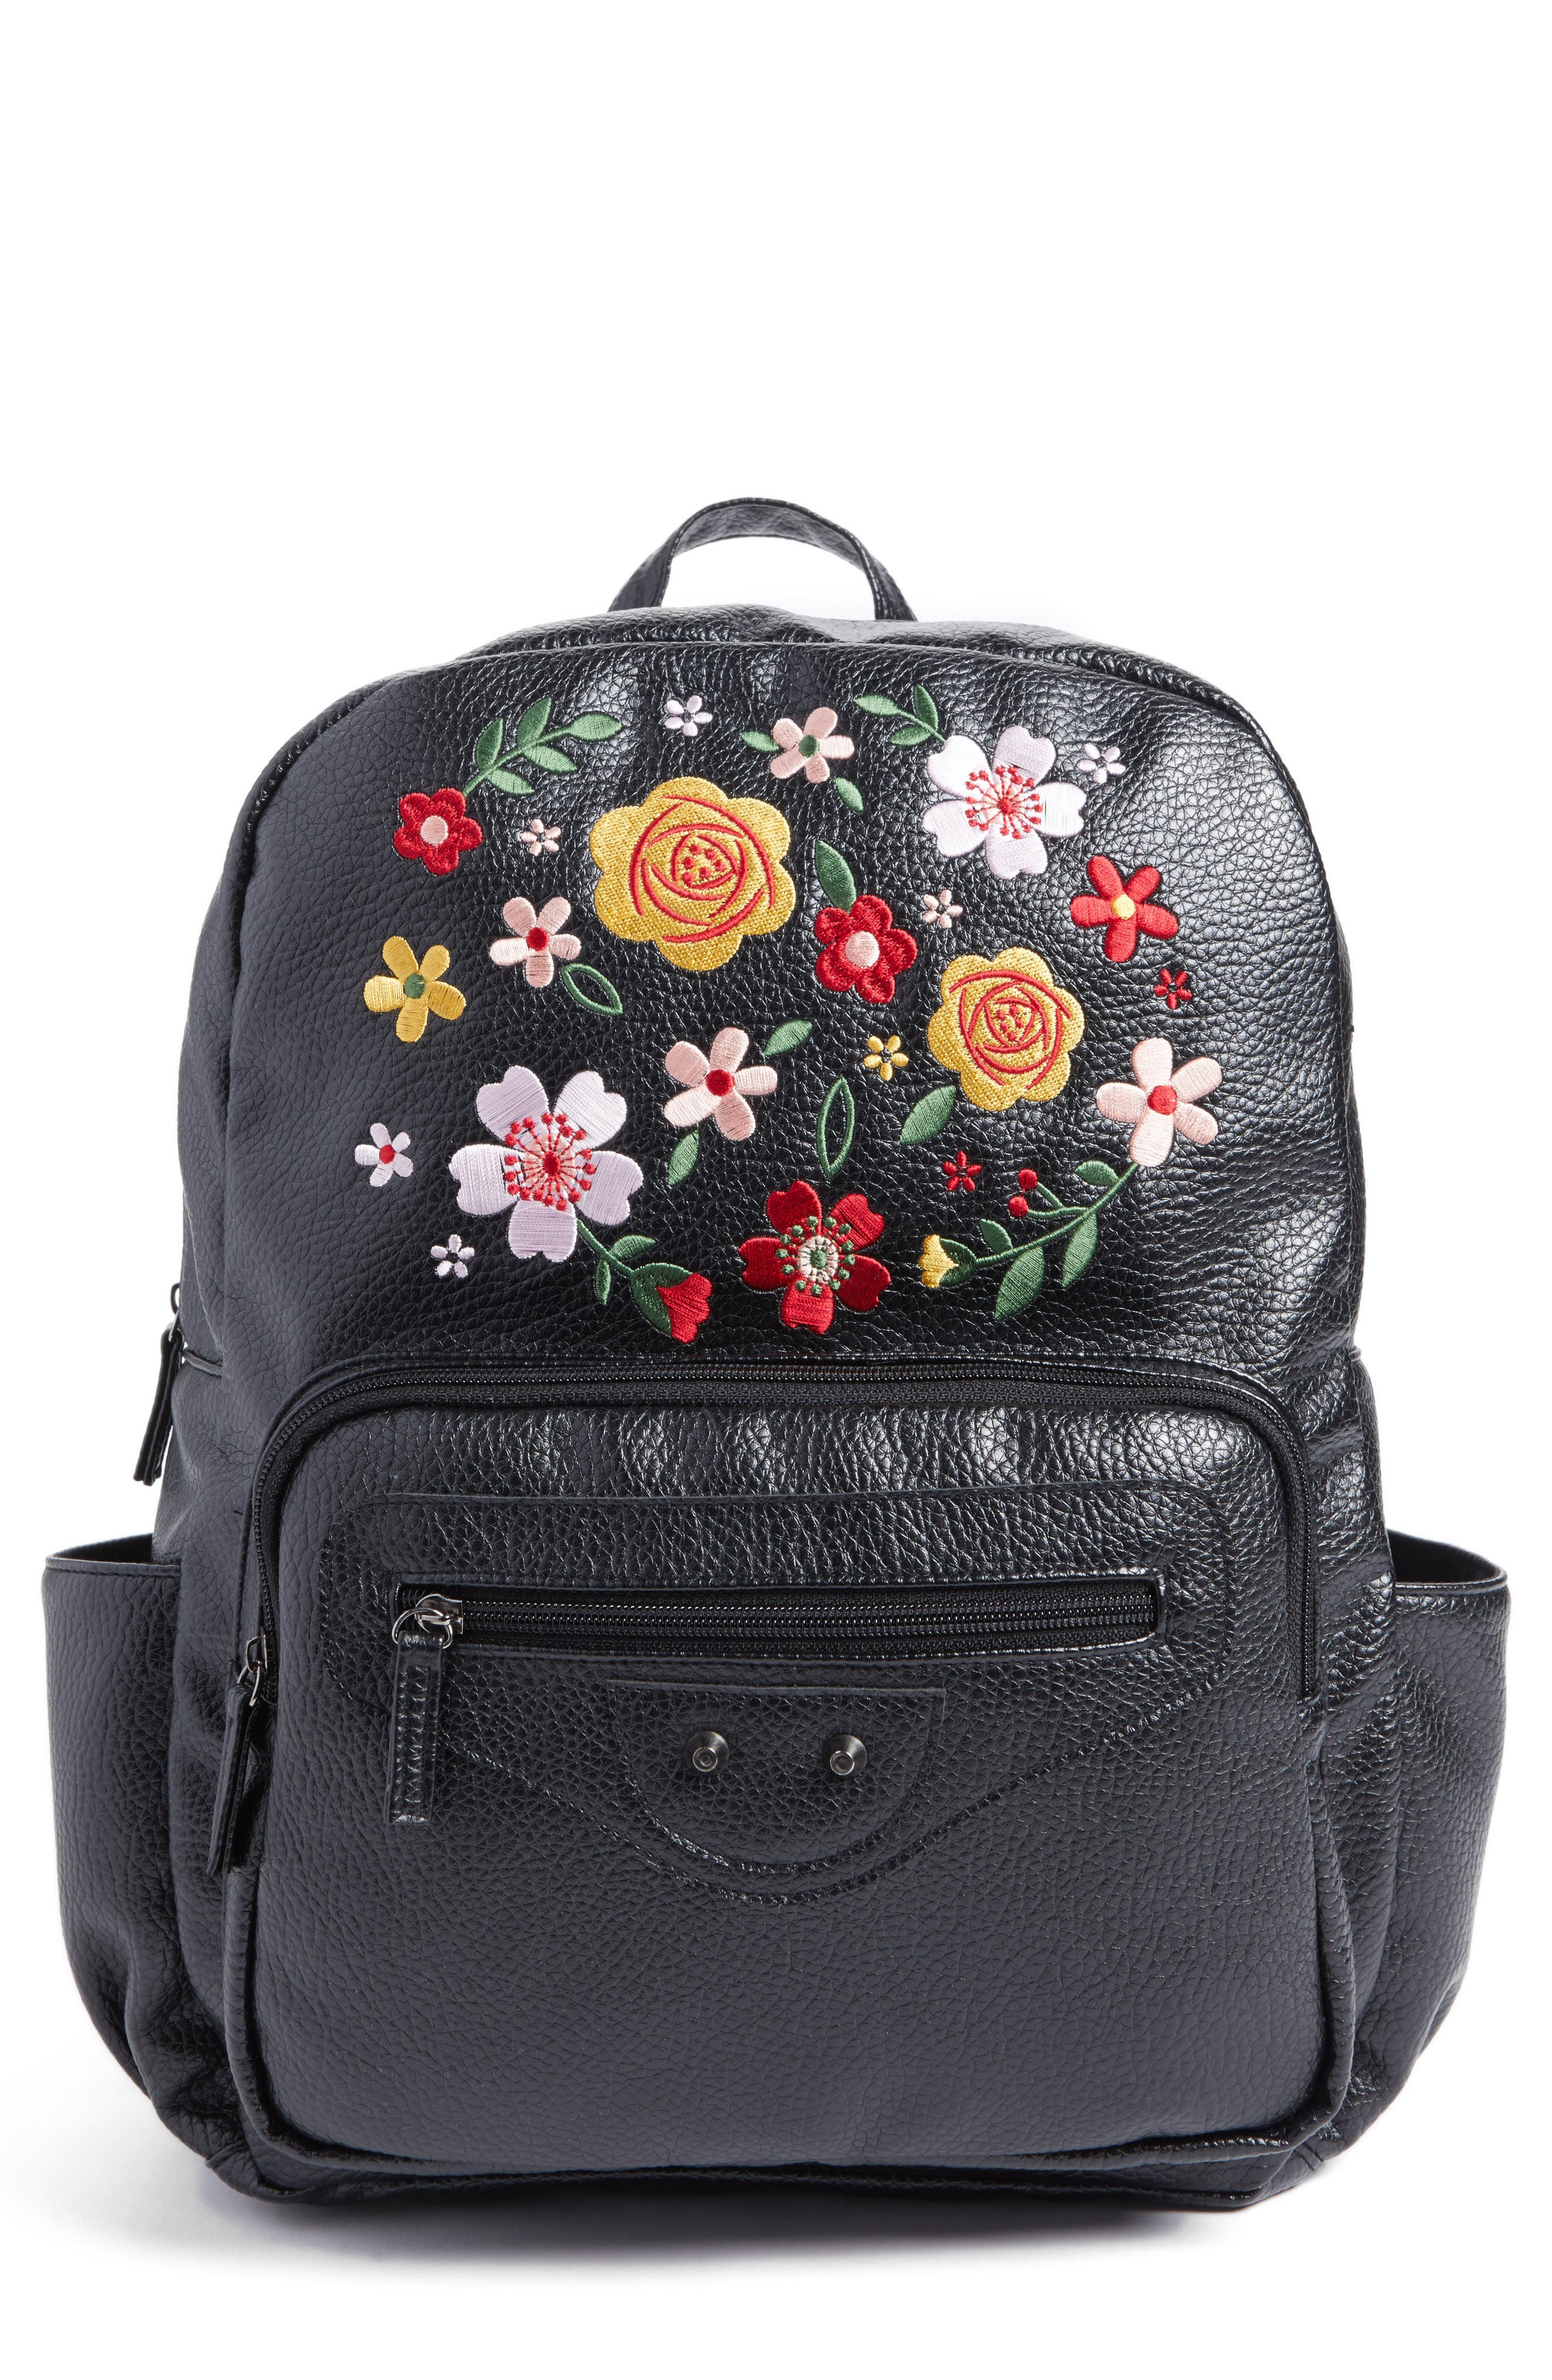 Alternate Image 1 Selected - Tucker + Tate Embroidered Backpack (Kids)